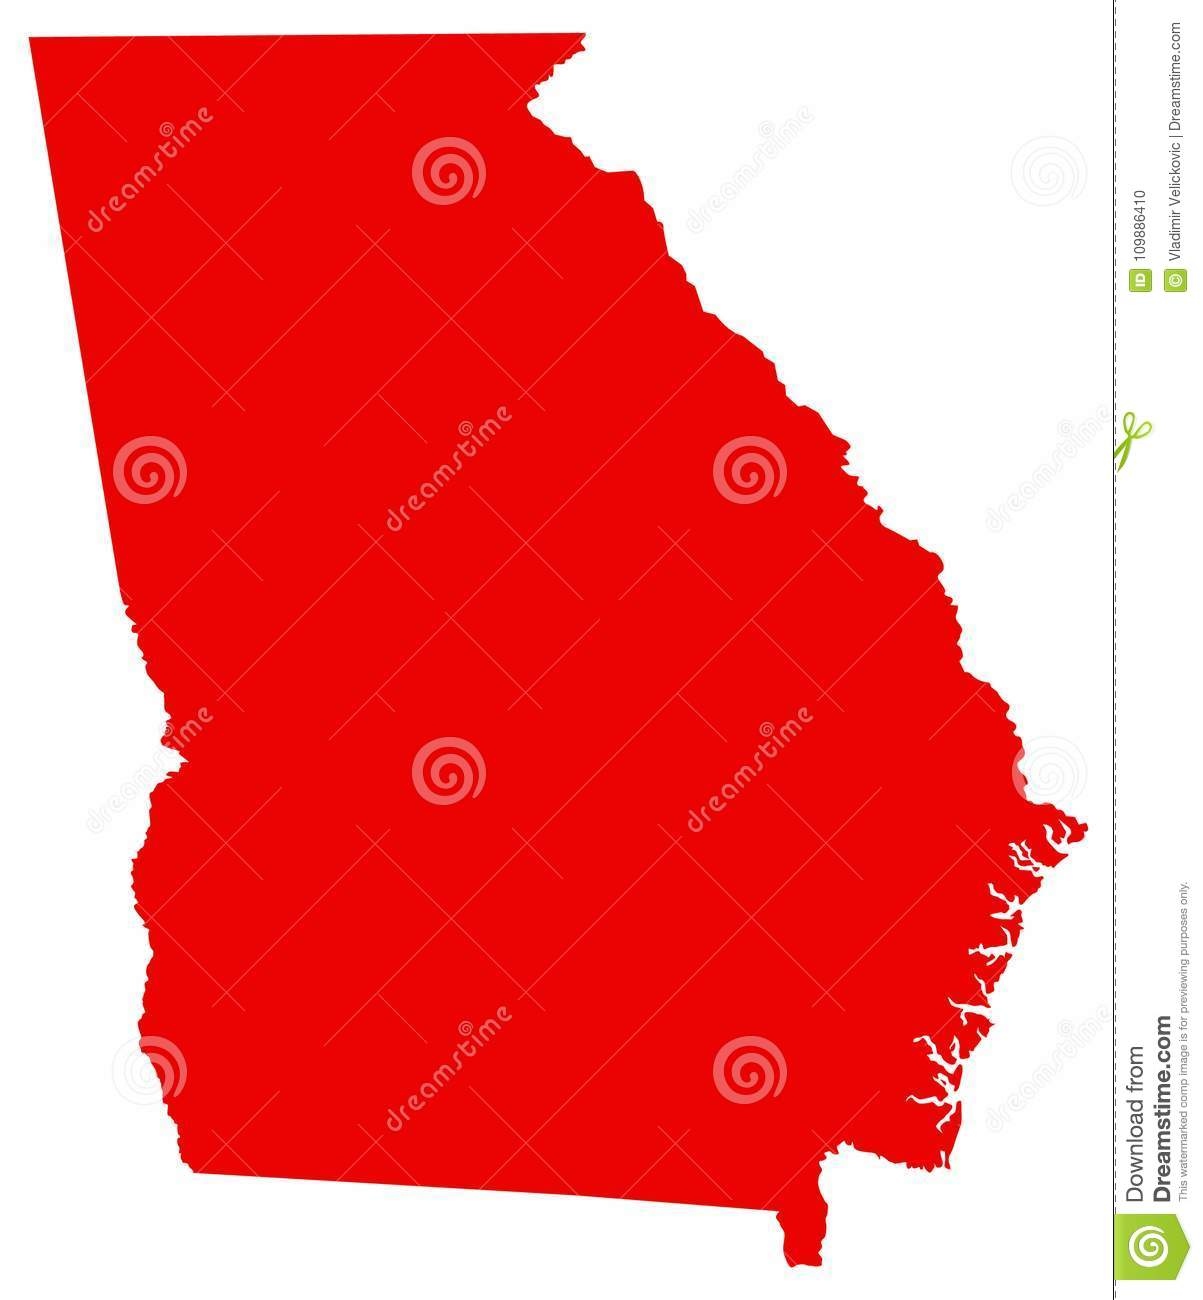 Georgia Map - State In The Southeastern United States Stock ...